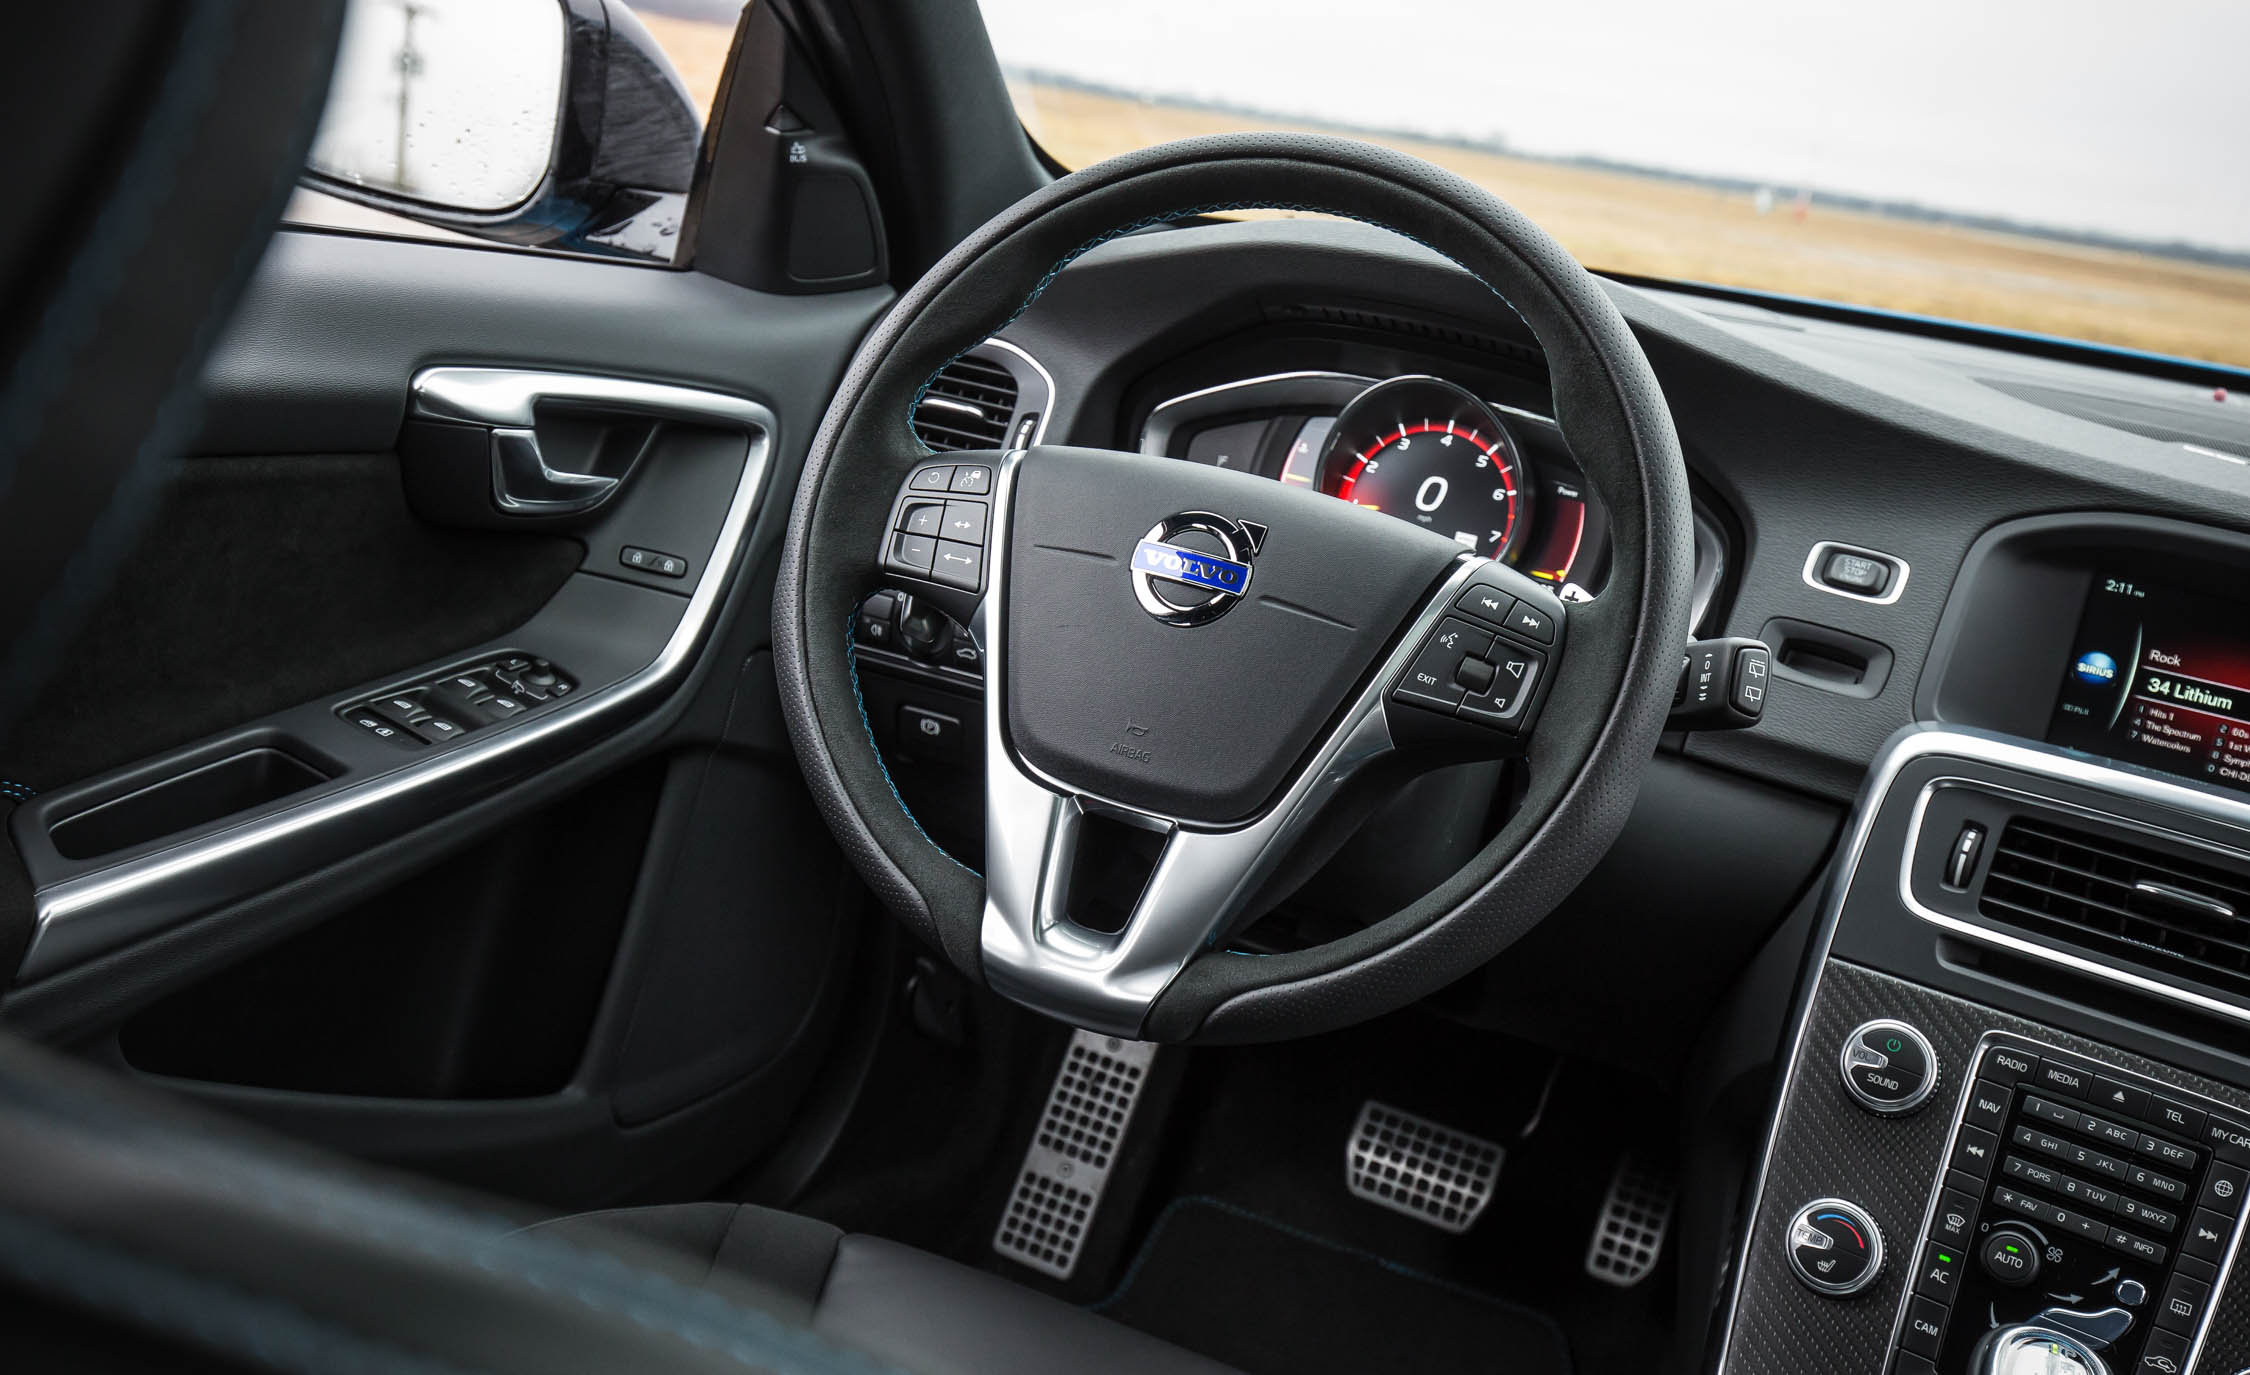 2017 Volvo V60 Polestar Interior Cockpit Steering (View 47 of 53)